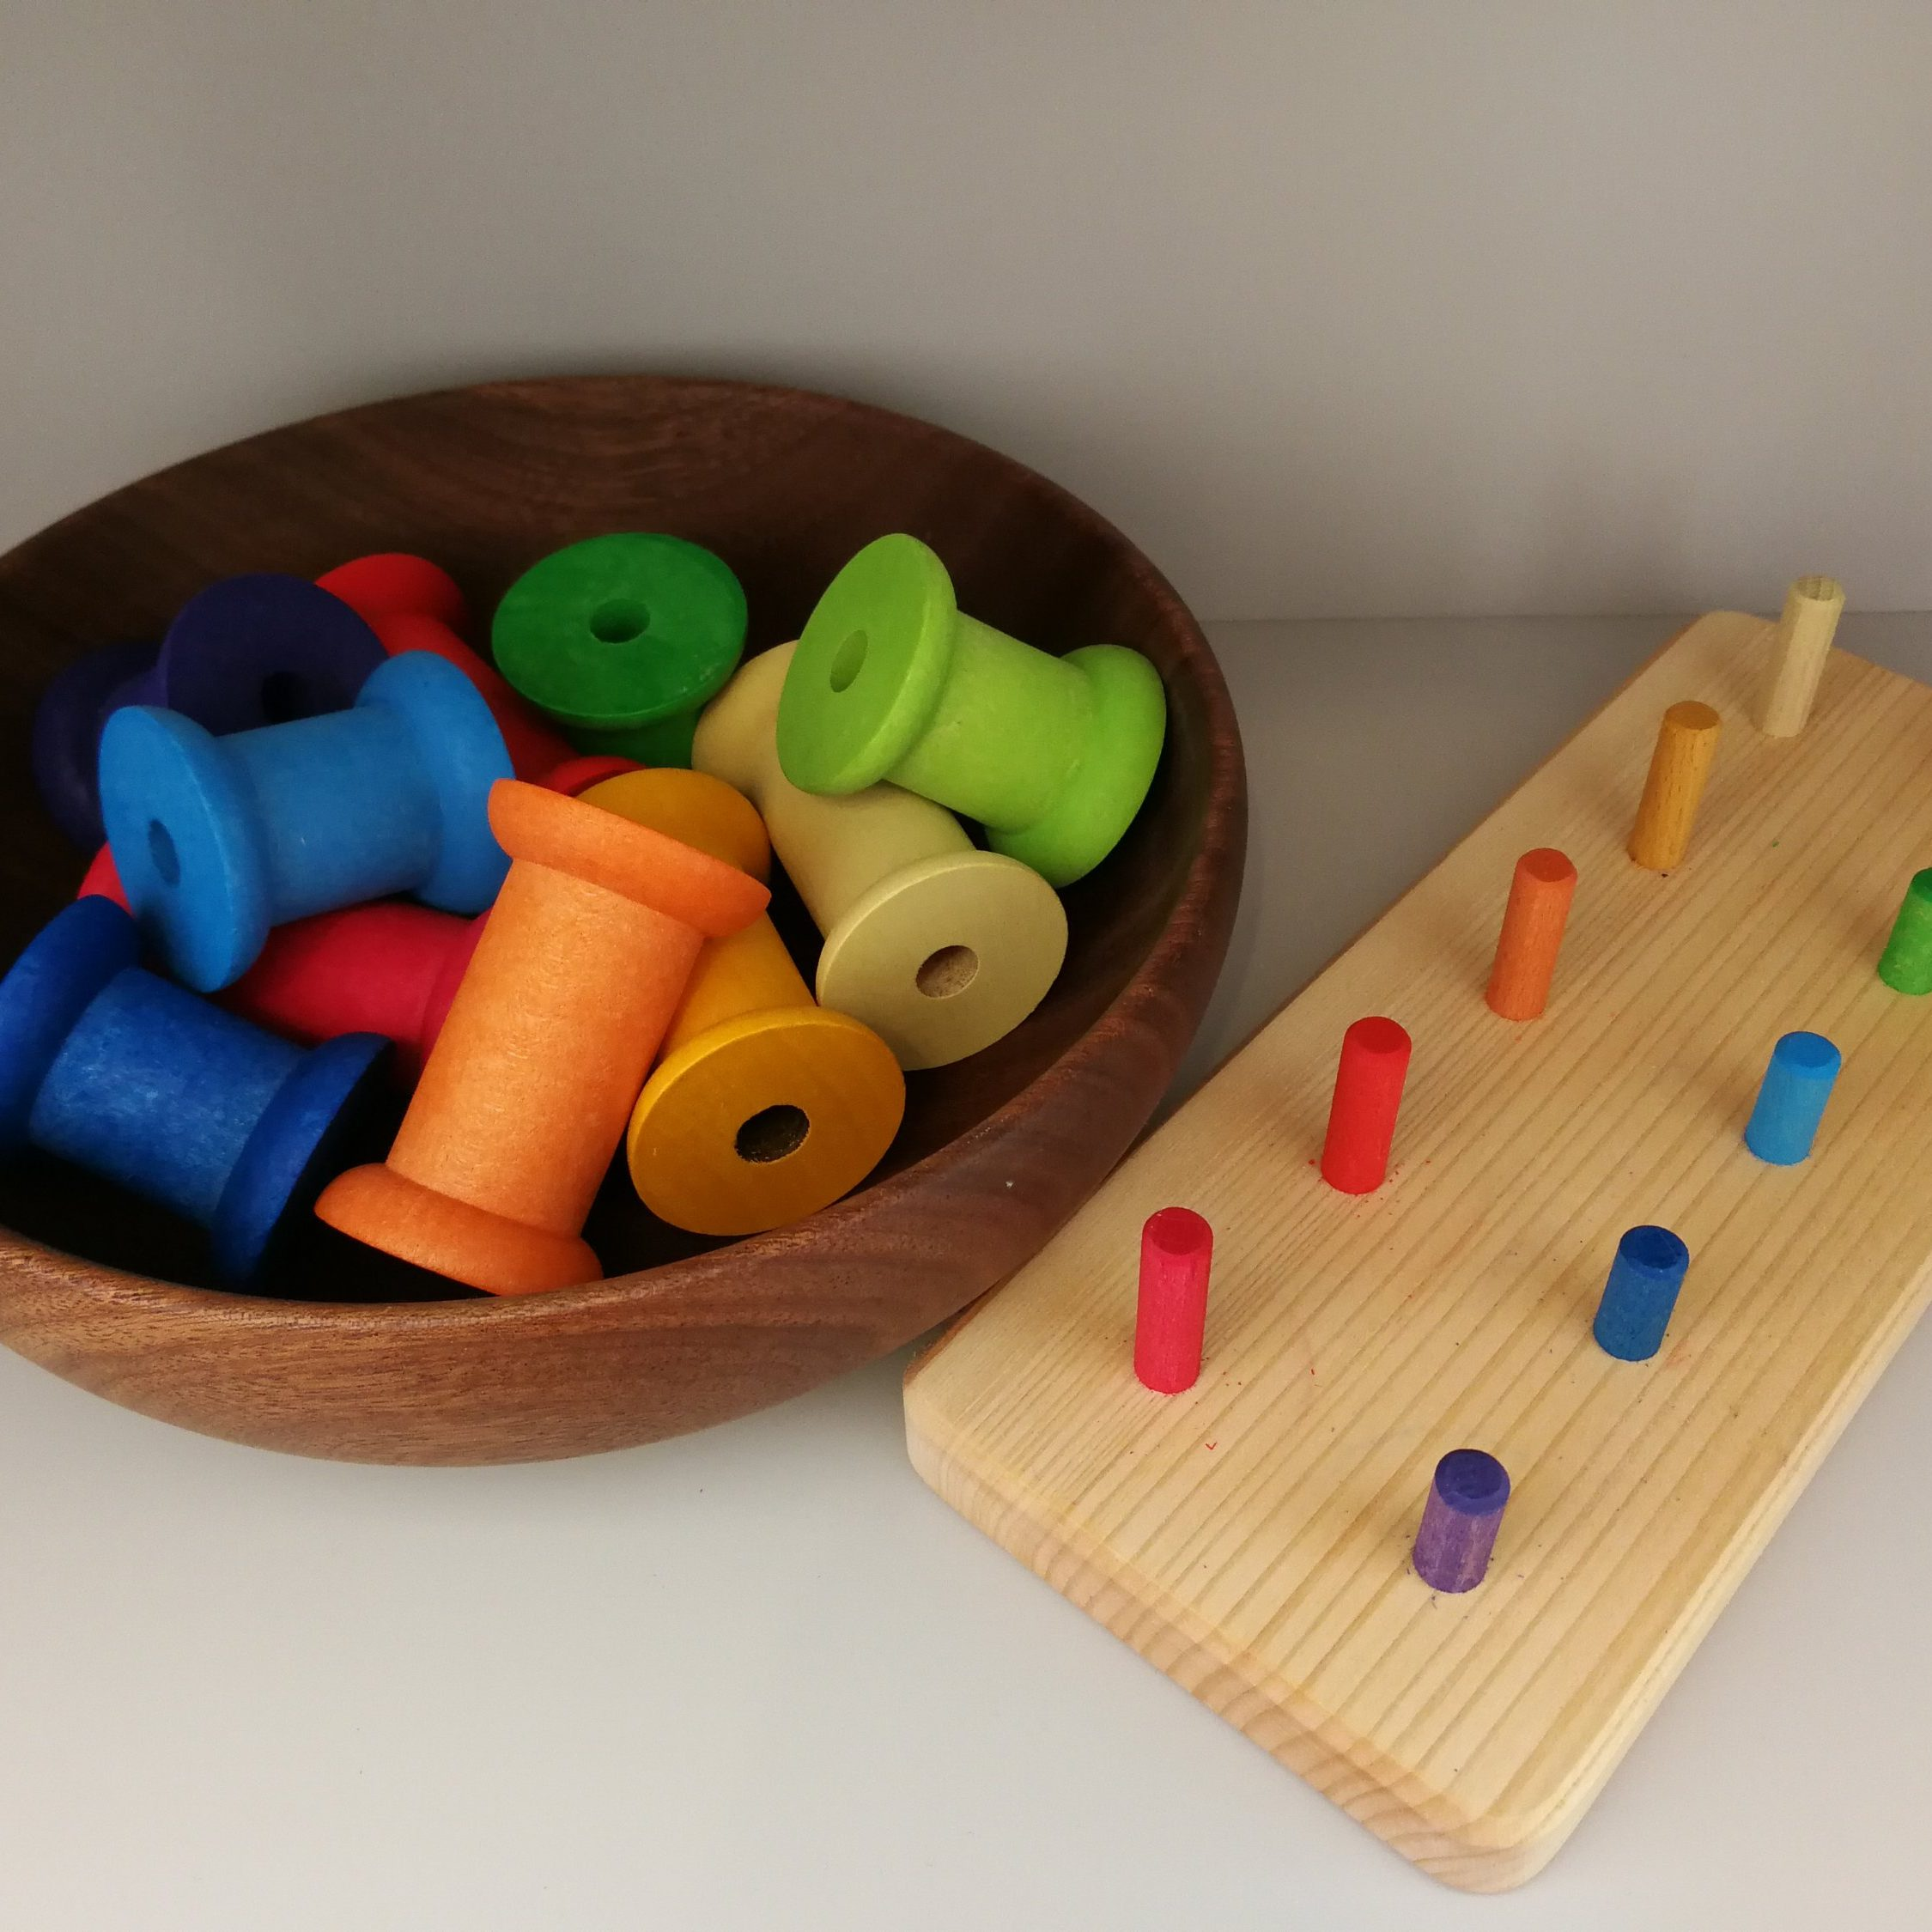 Shelfie - toy rotation - toy organisation - early years - toddler ideas - play